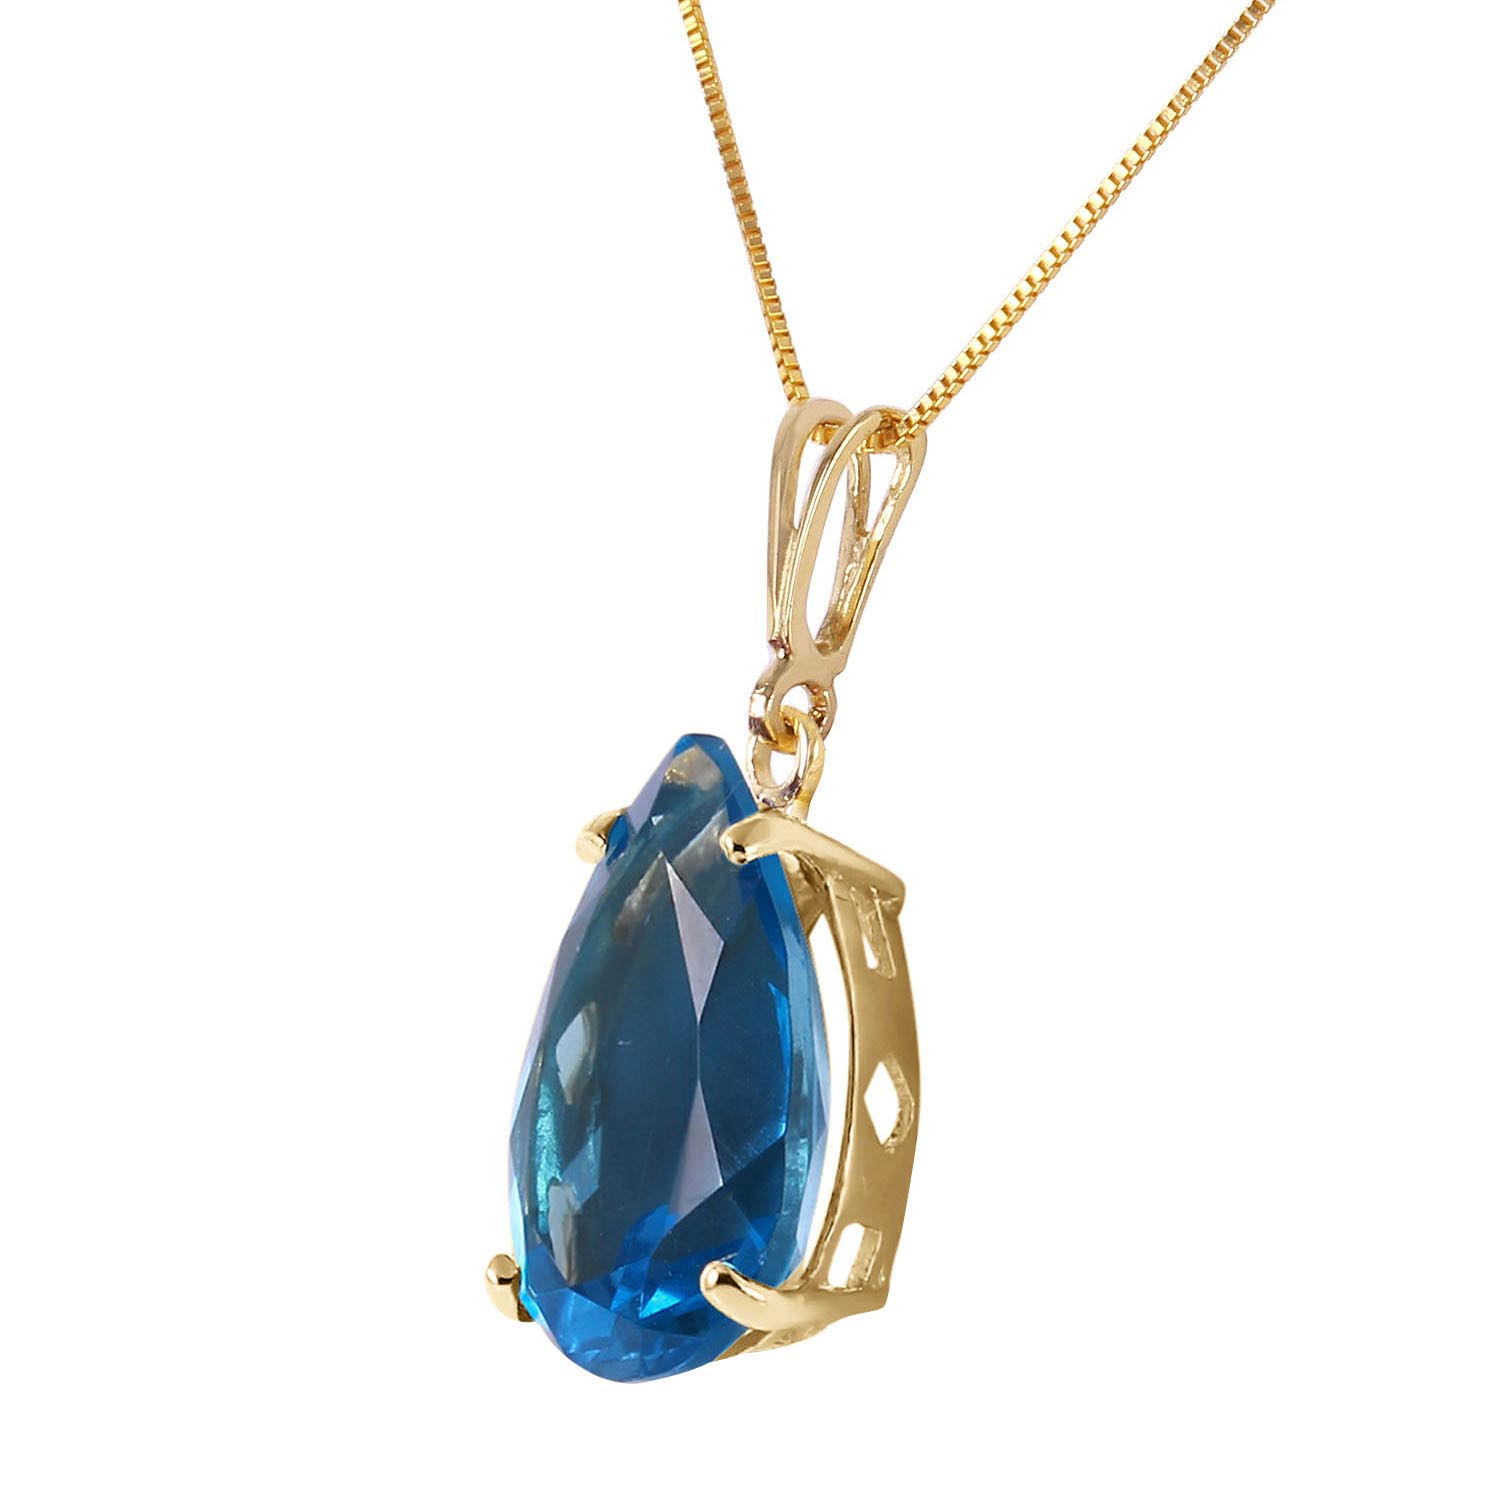 Pear Cut Blue Topaz Pendant Necklace 6.5ct in 9ct Gold